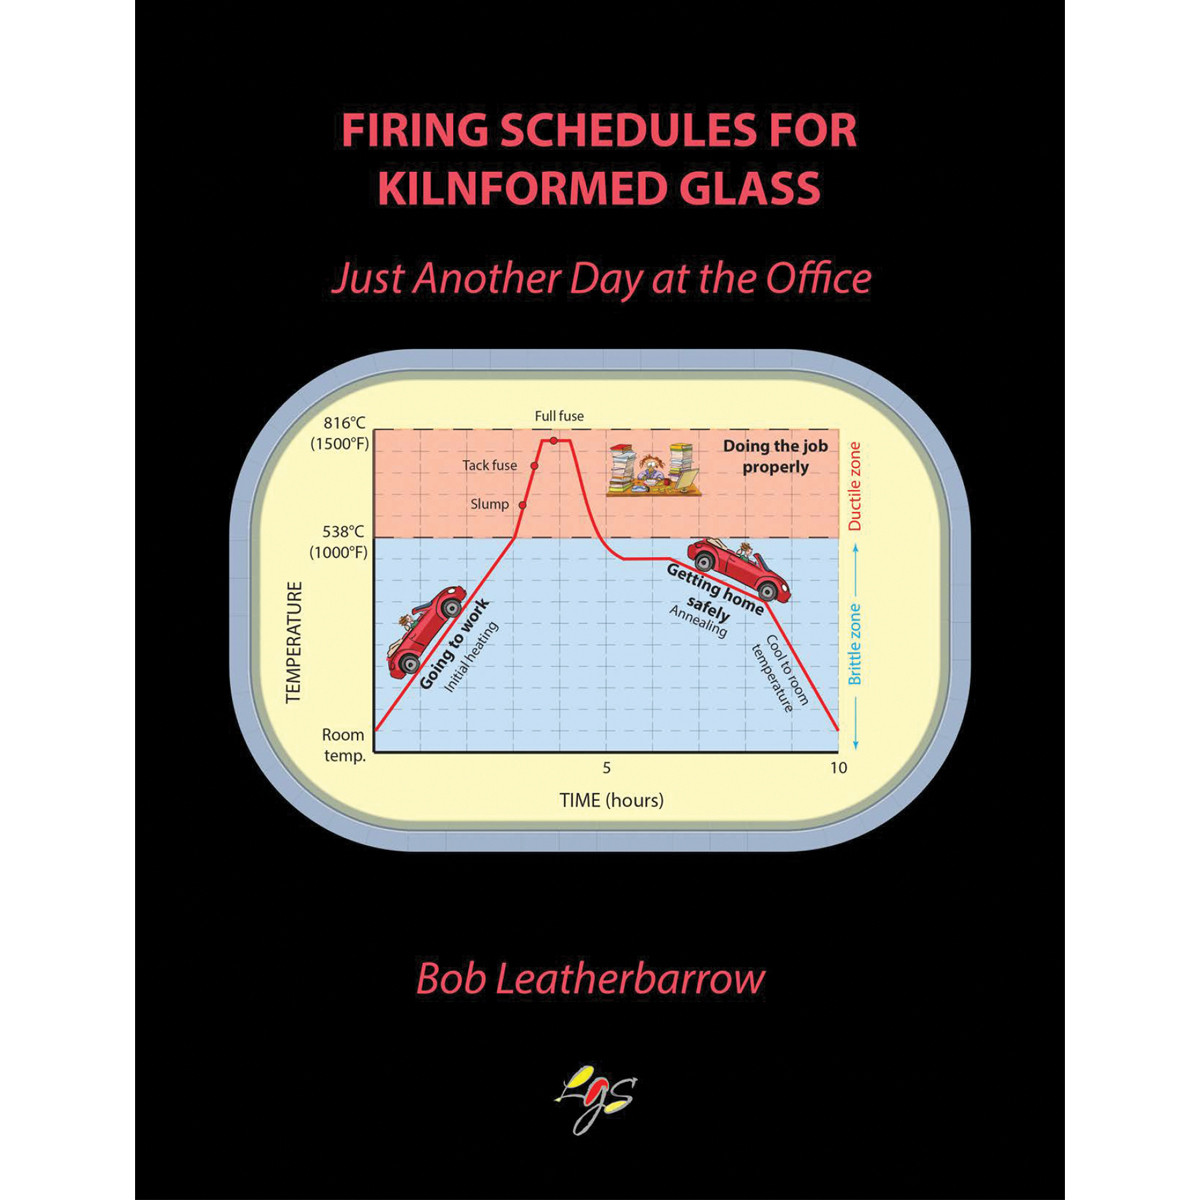 Ebook | Firing Schedules for Kilnformed Glass - Just Another Day at the Office